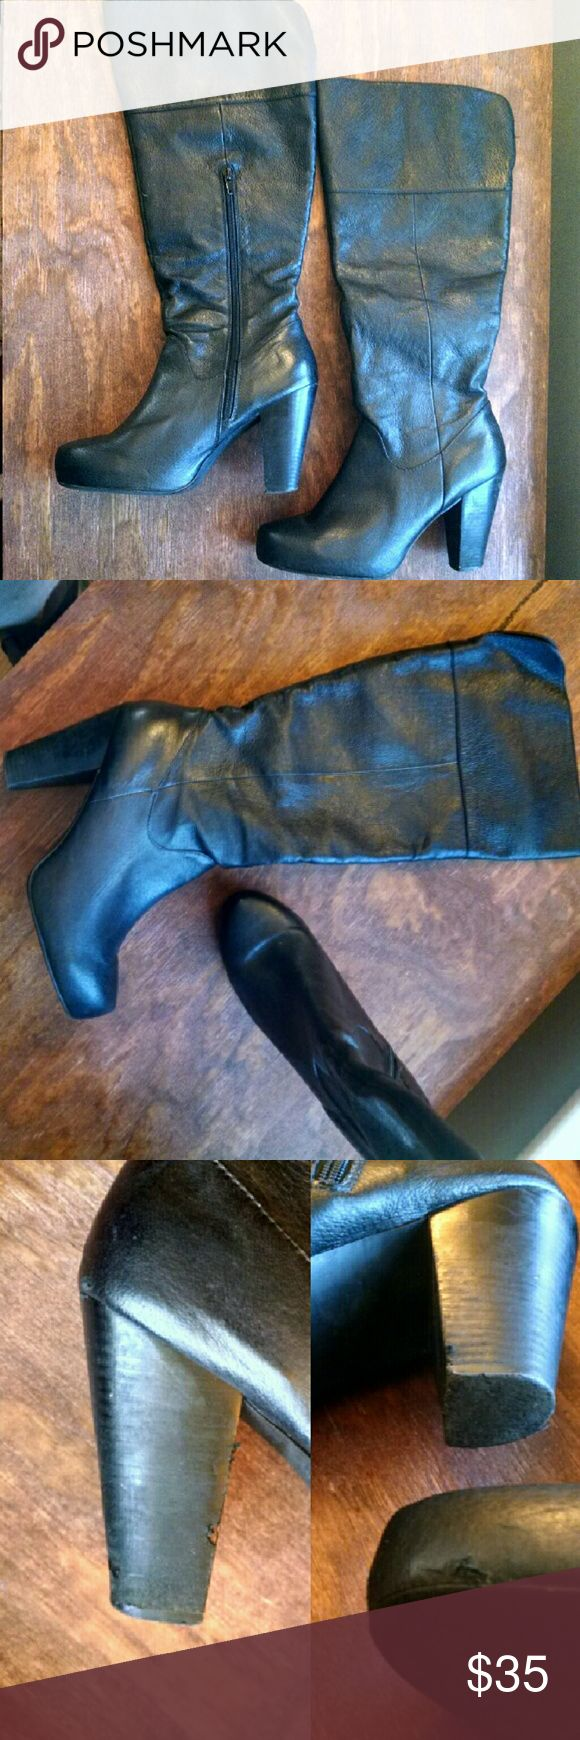 """Steve Madden leather knee high boots Genuine leather Gillis boots. These are really comfy, I just replaced them with a different pair of boots in my wardrobe.  Some damage on heels shown in pics.  - Partial side zip closure - Top split shaft at back - Stacked heel - Hidden platform - Approx. 16"""" shaft height, 16"""" opening circumference - Approx. 4"""" heel, 0.75"""" platform - Imported Steve Madden Shoes Heeled Boots"""